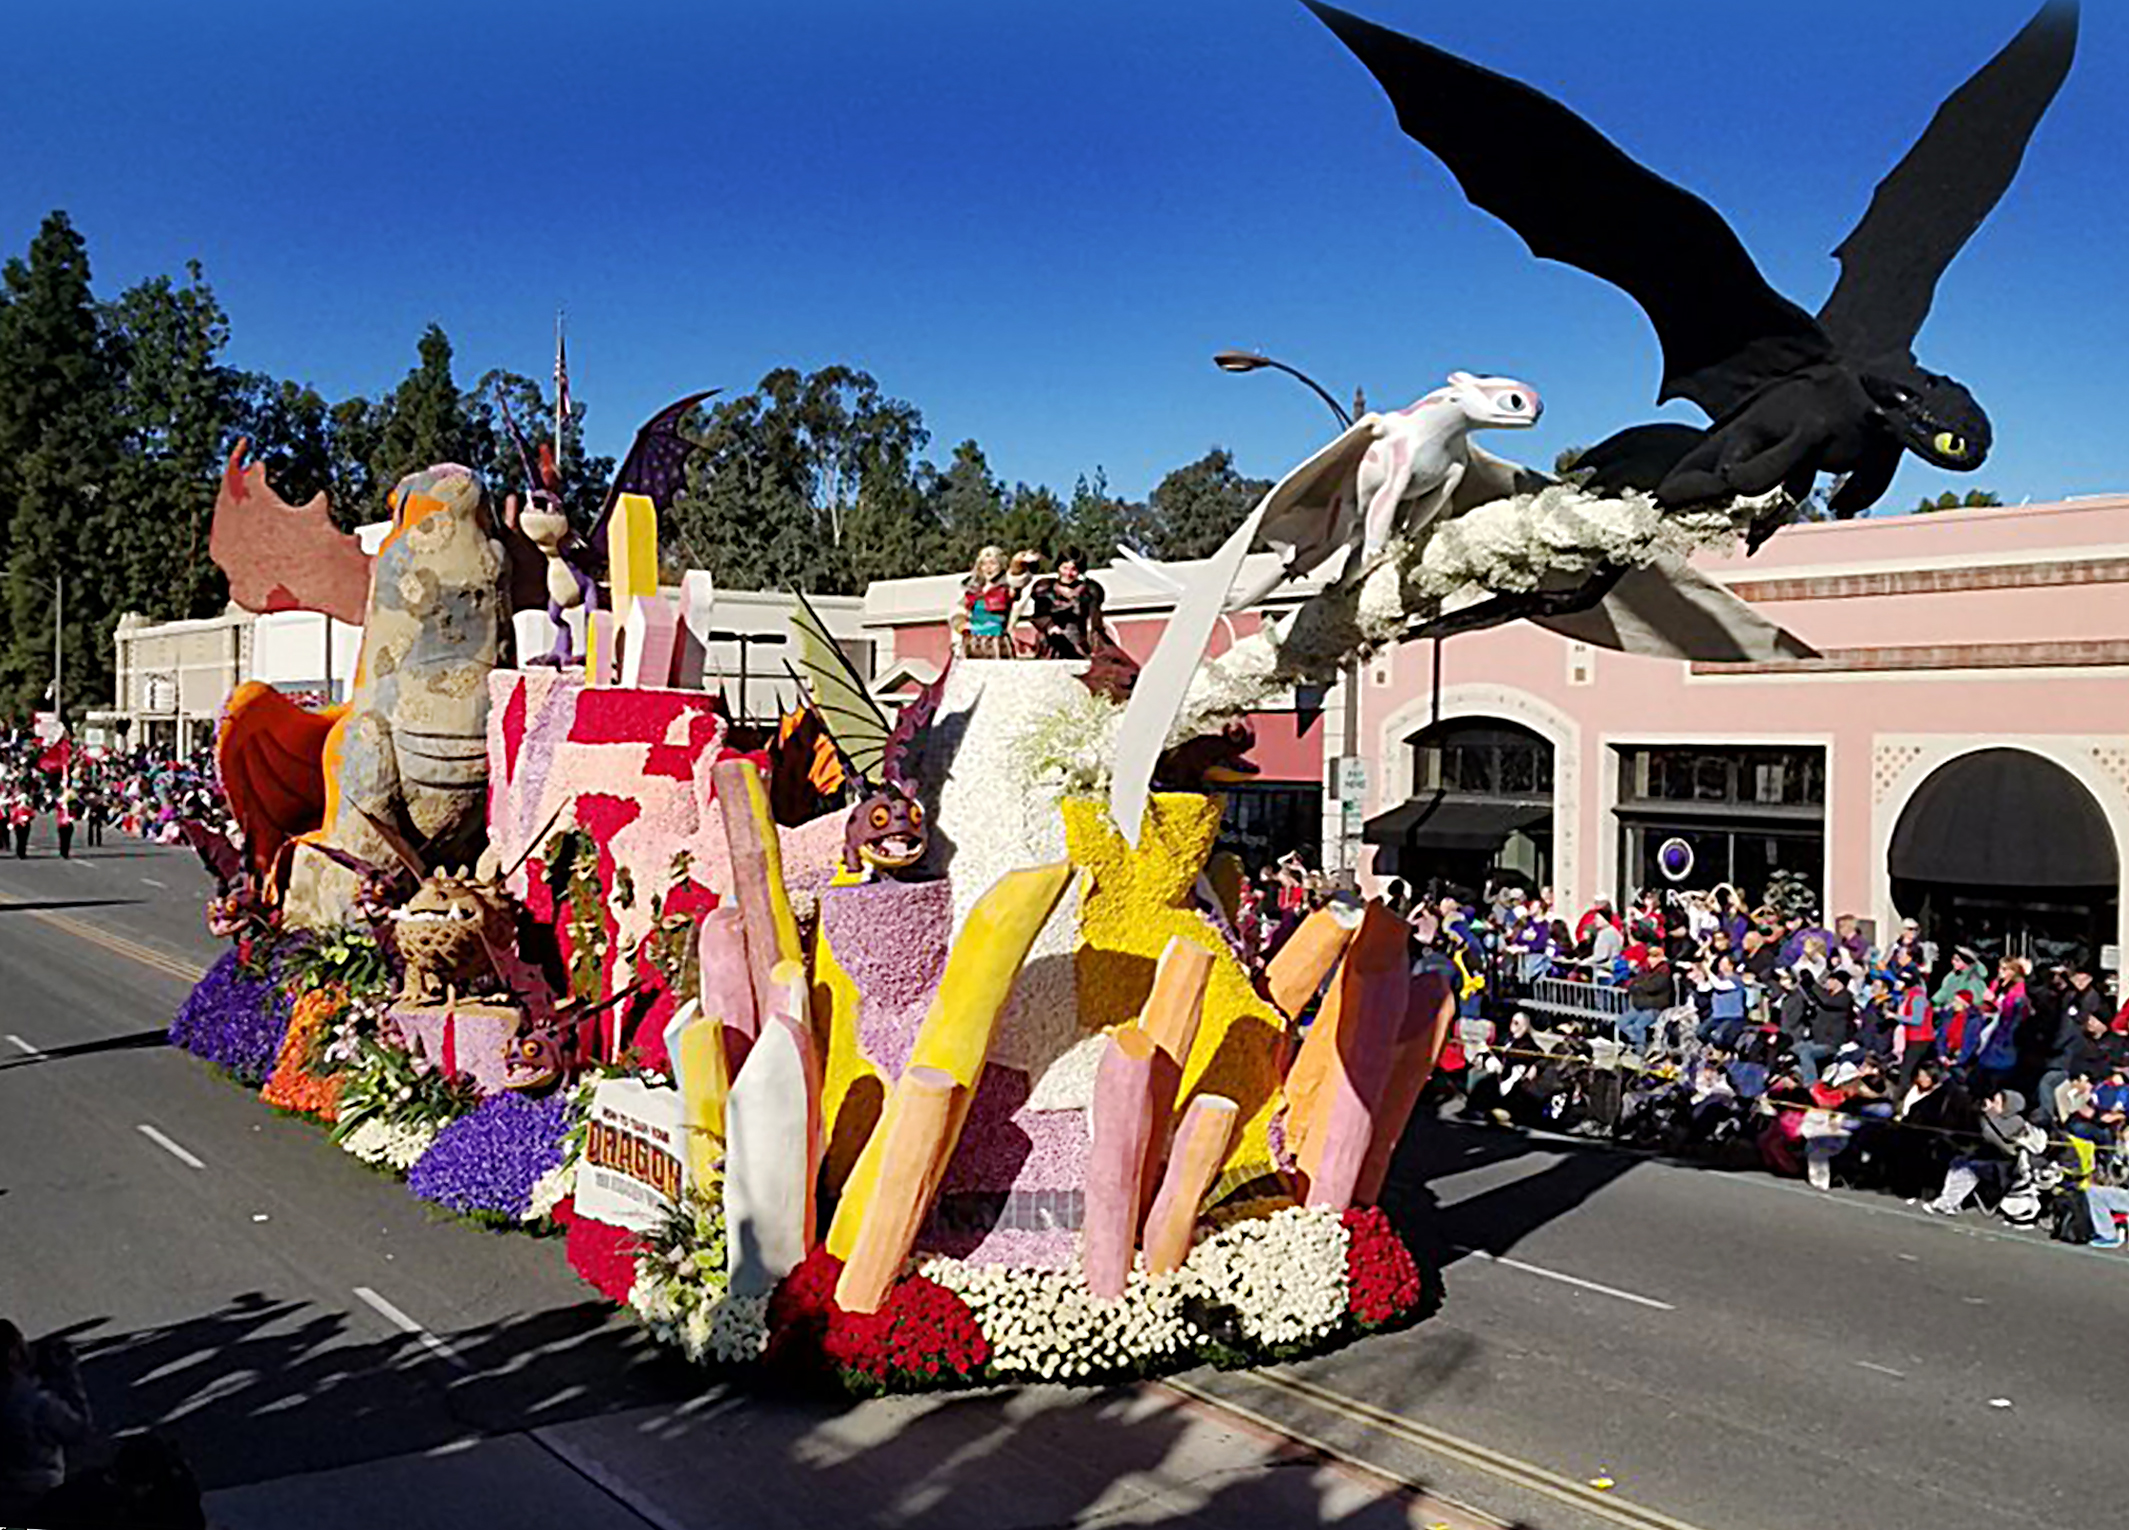 rose parade-how to train your dragon_05 hires.jpg